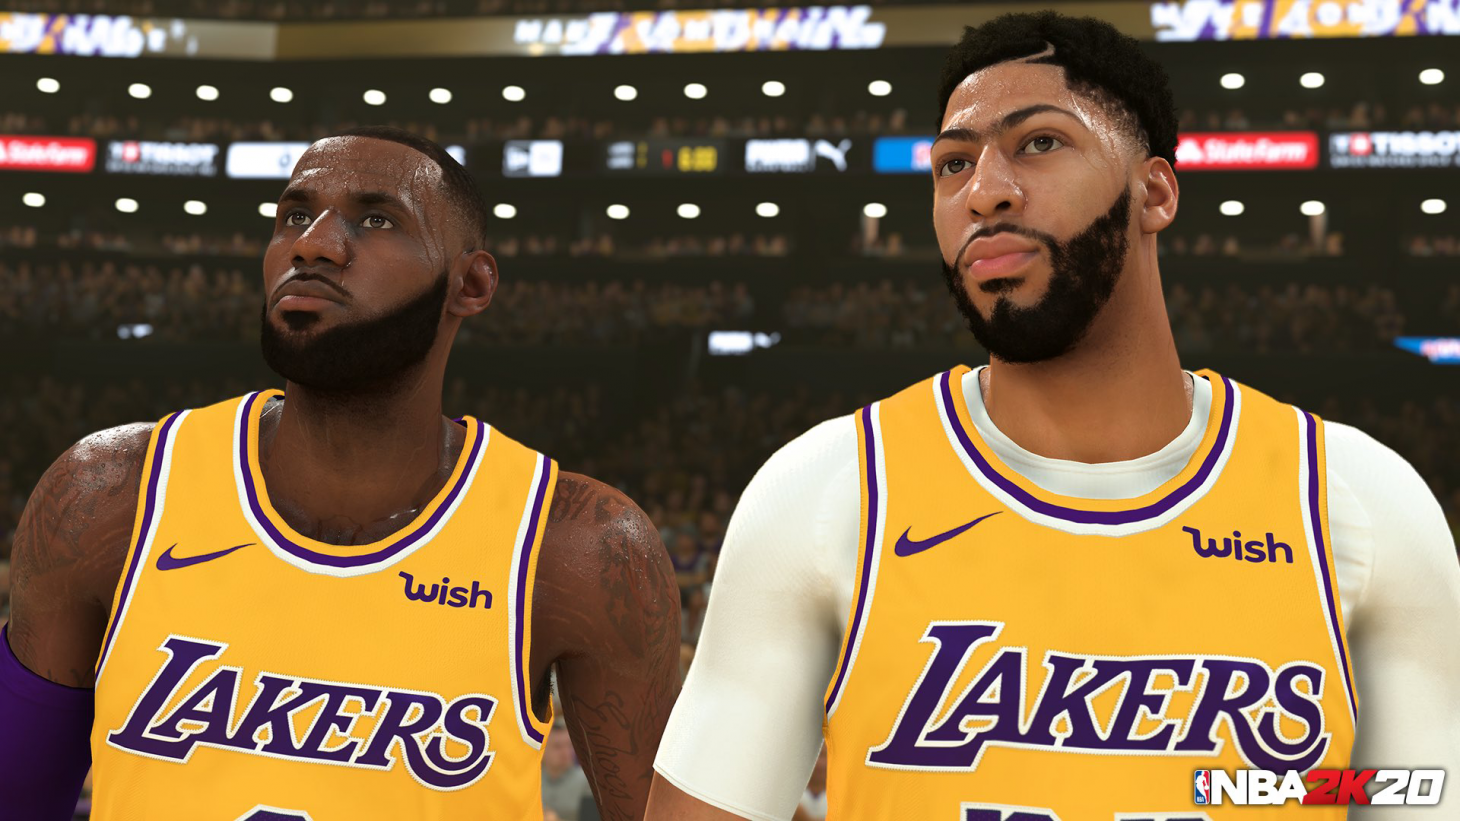 Best Nba Players 2020.2k Sports Reveals Ratings For The Best Players In Nba 2k20